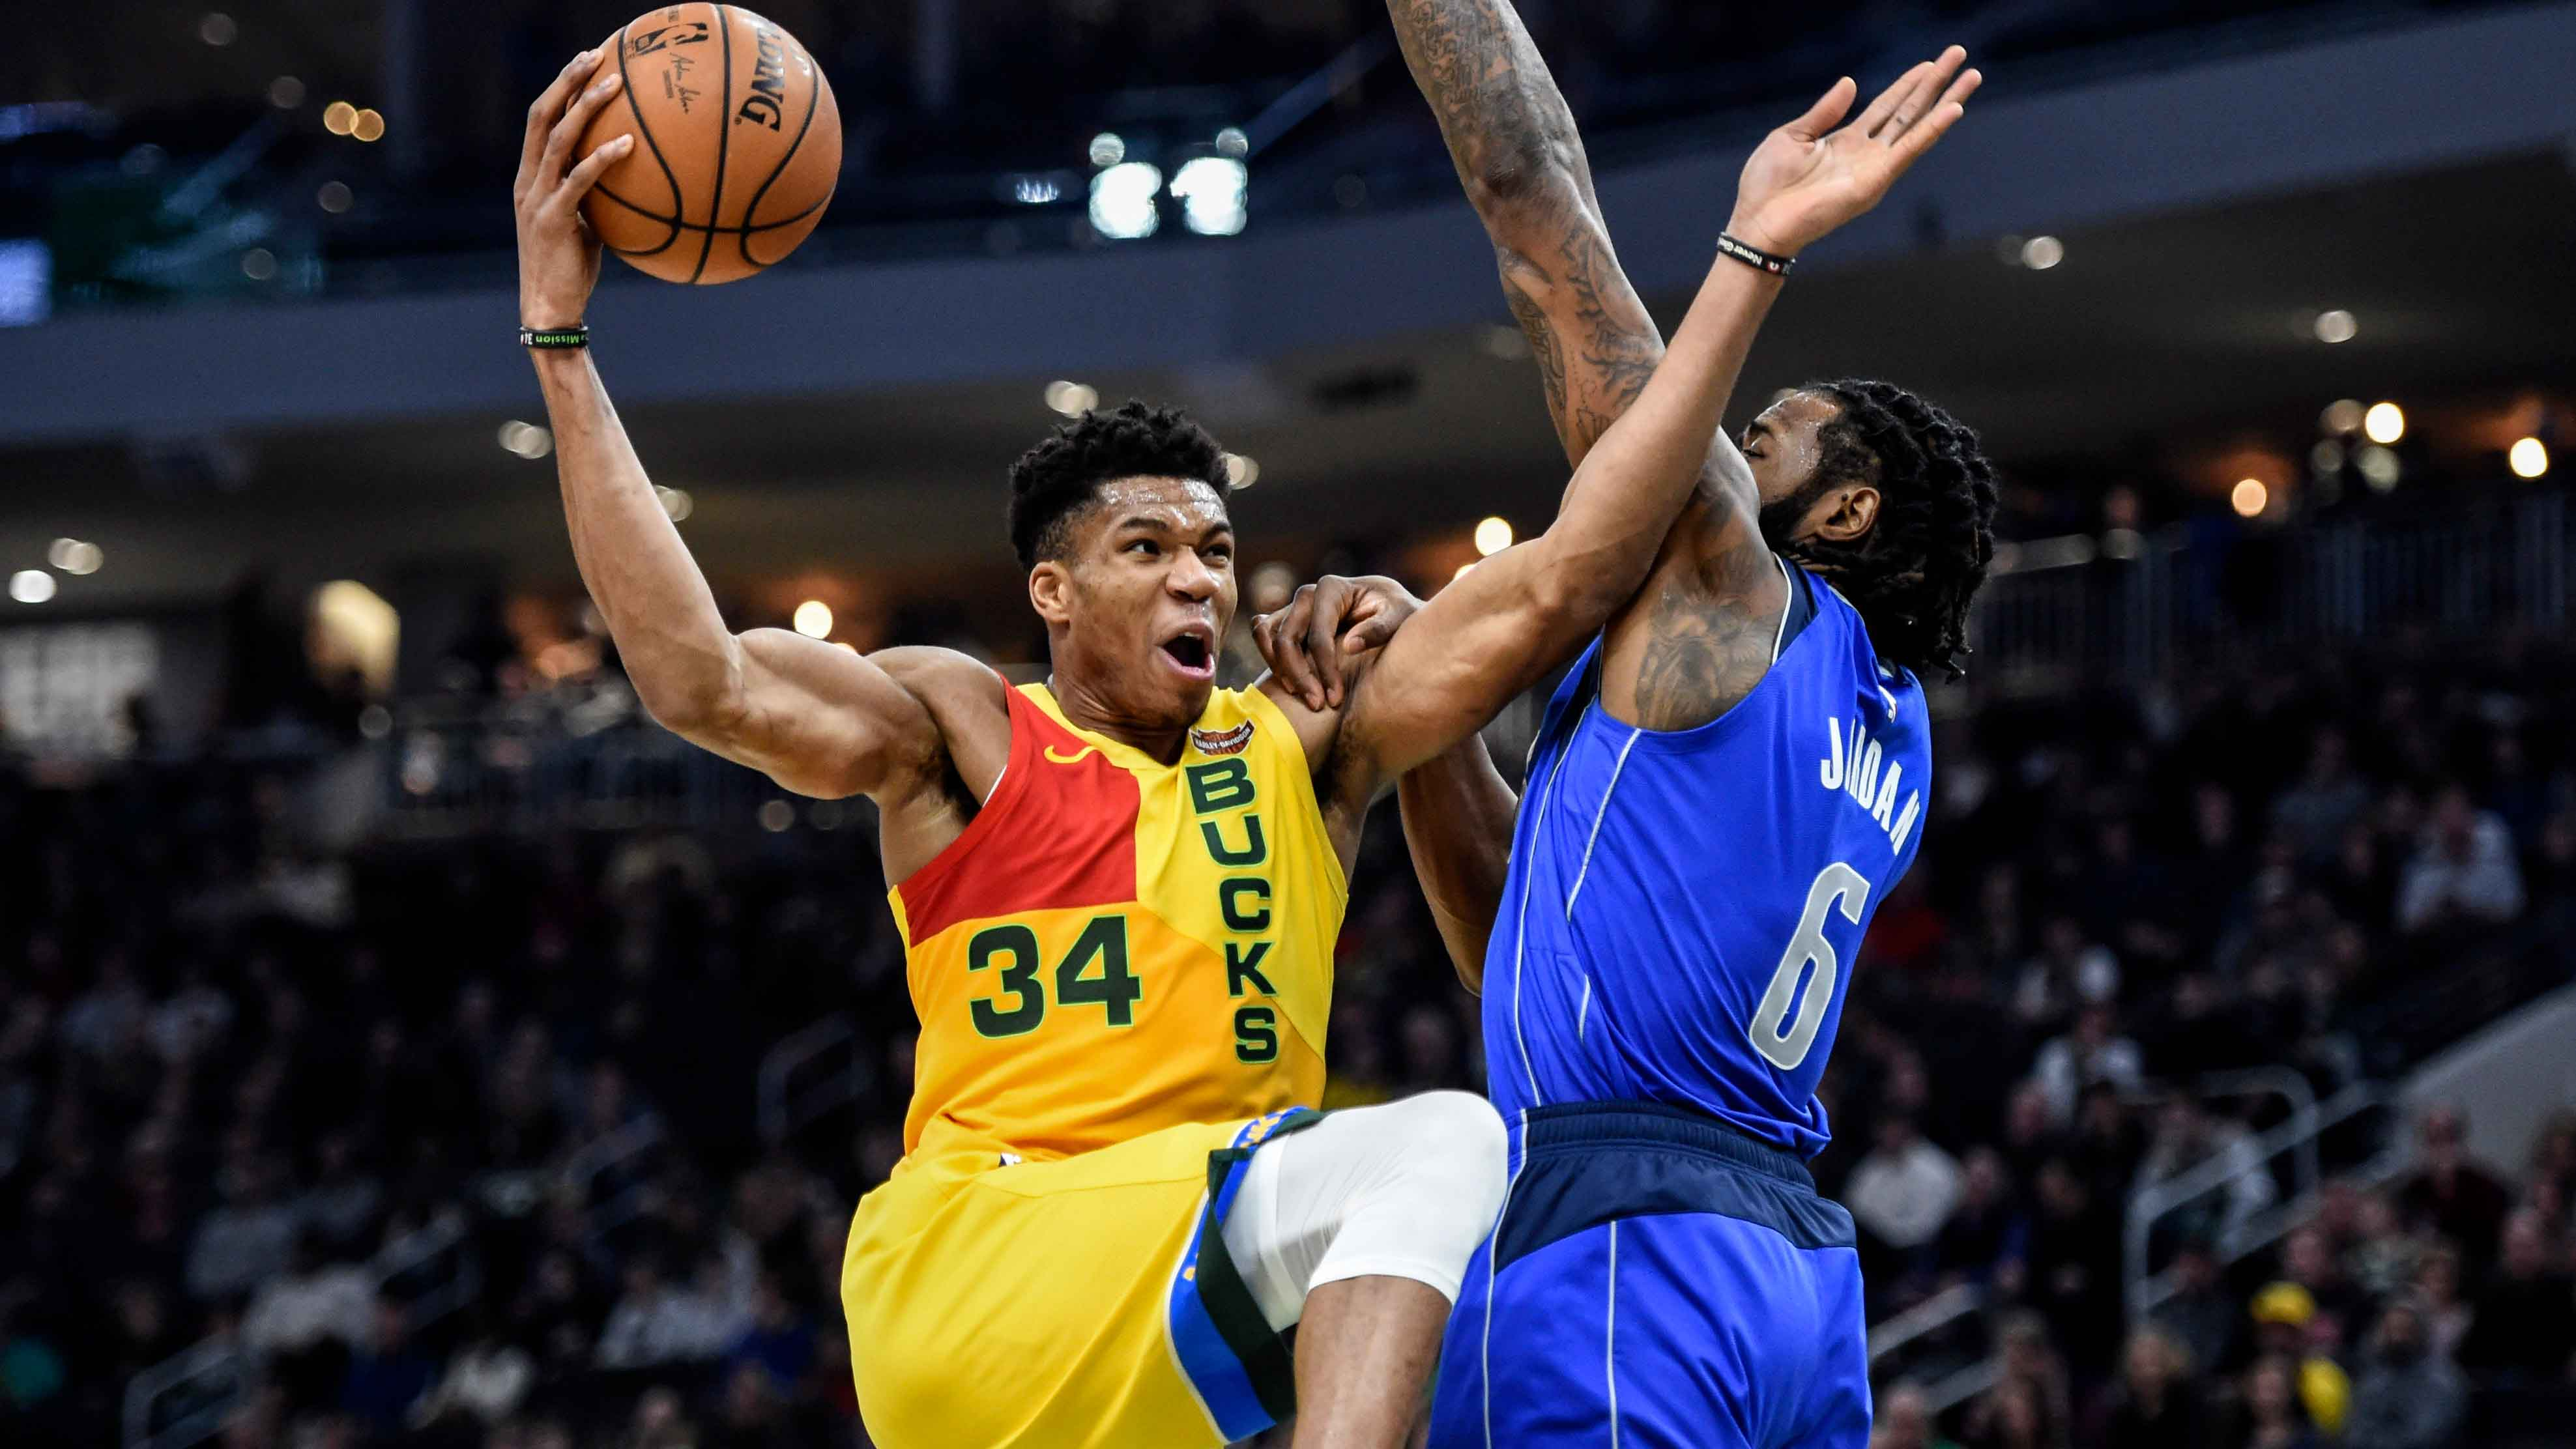 GAME RECAP: Bucks 116 - Mavericks 106 | 1.21.19